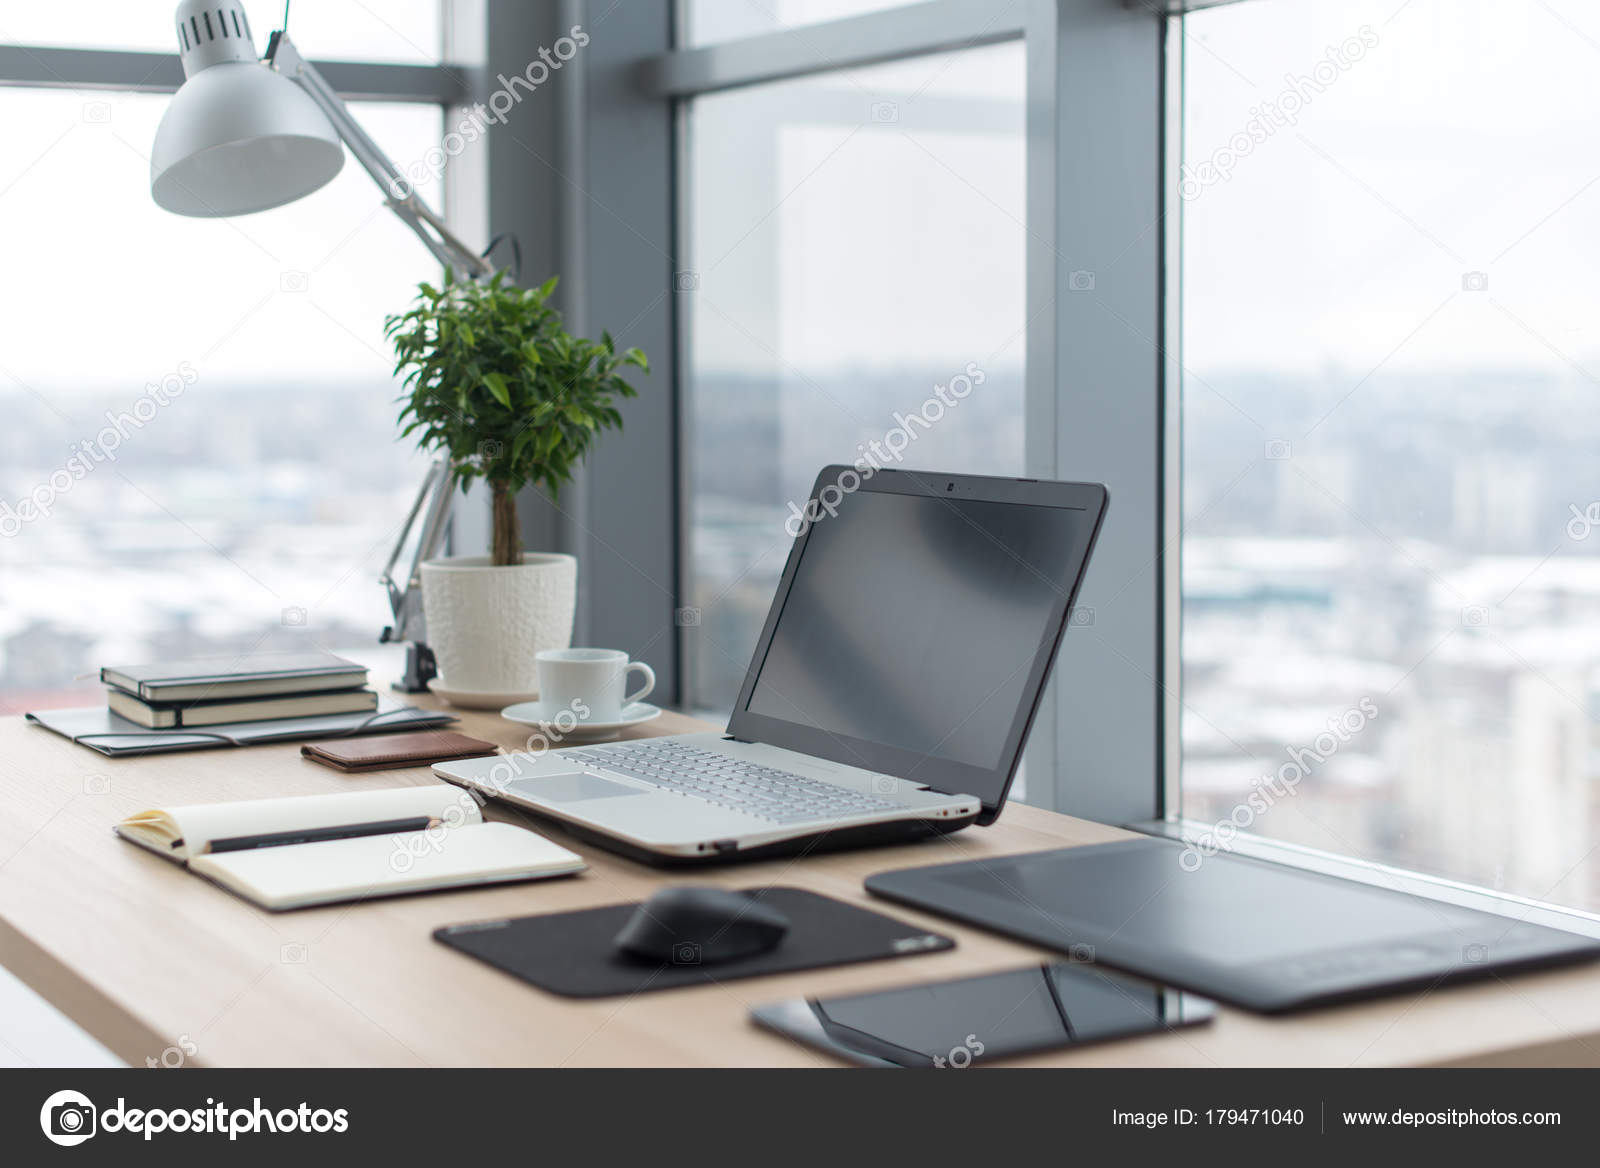 office work table. Workplace With Notebook Laptop Comfortable Work Table In Office Windows And City View. \u2014 Stock